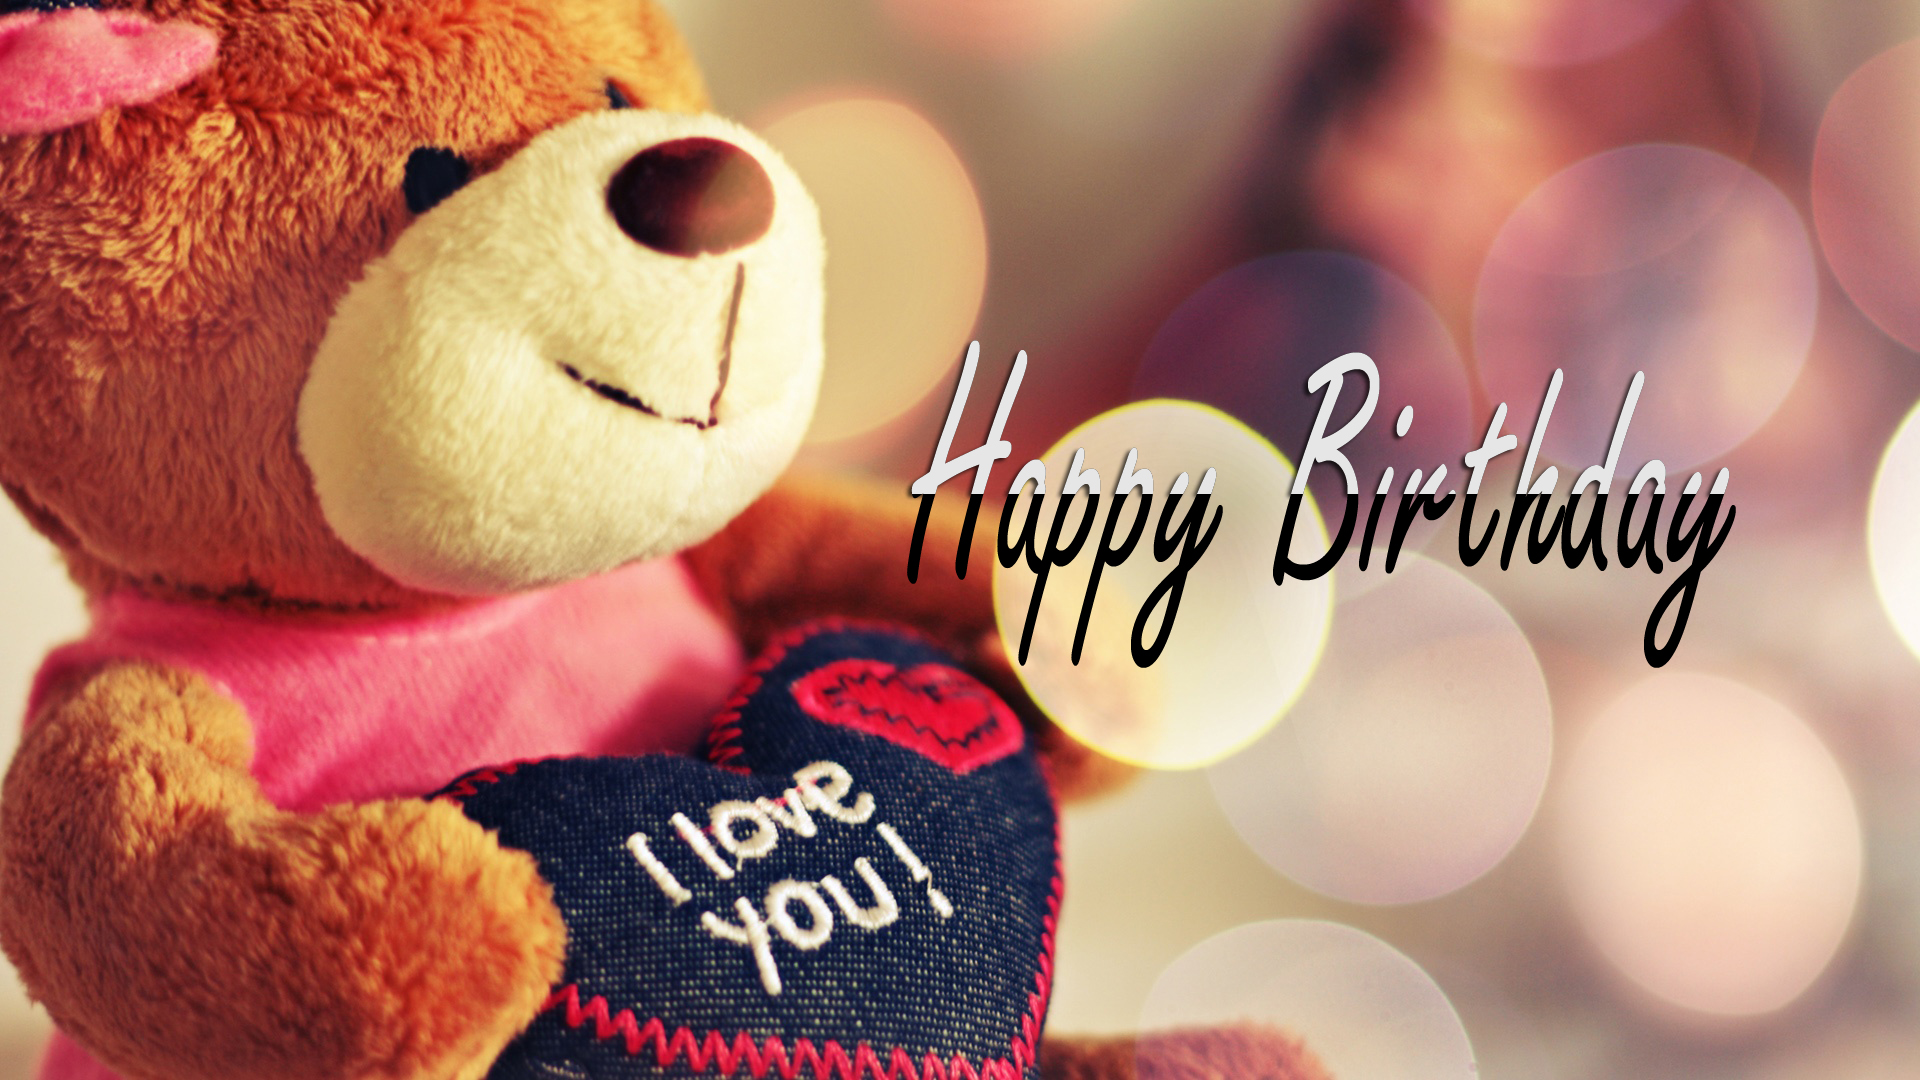 Happy-birthday-love-images